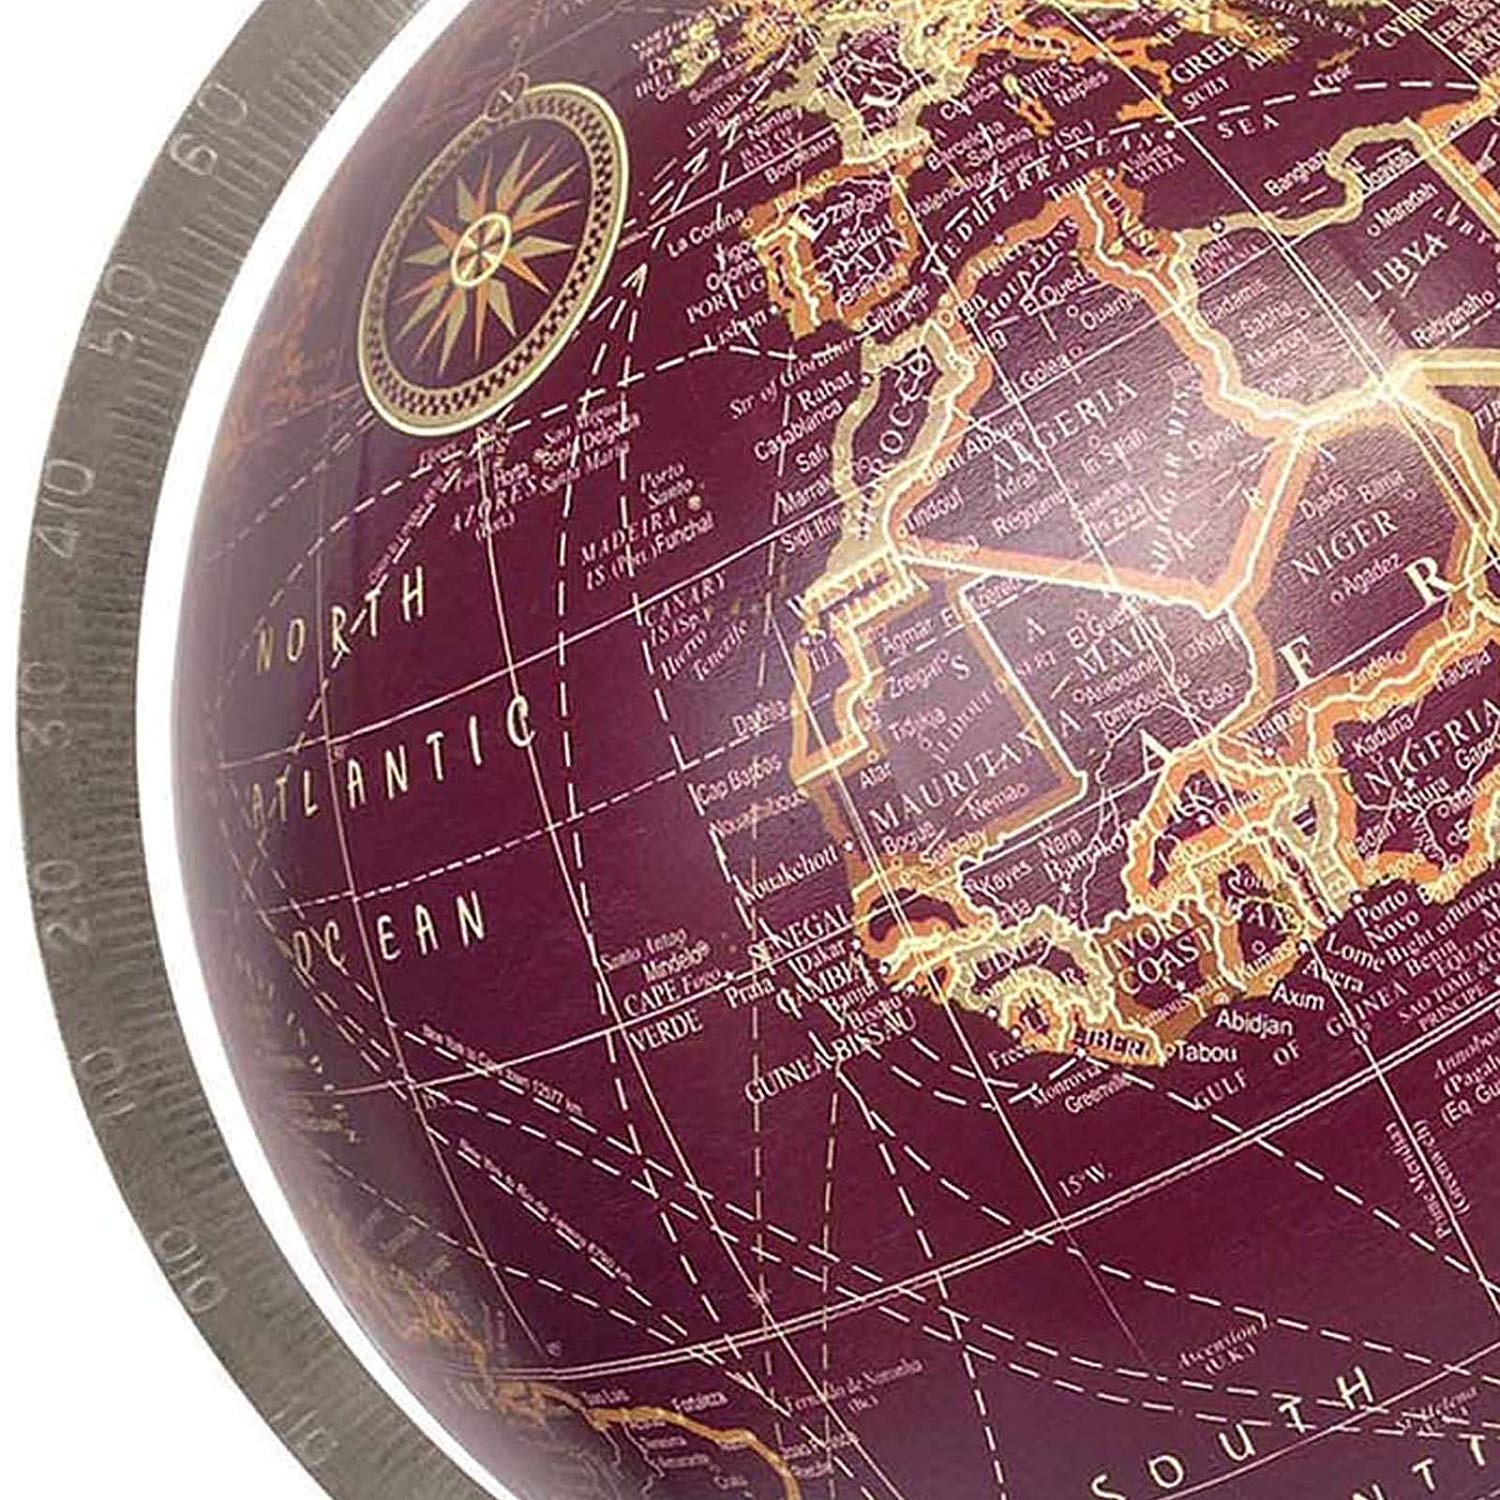 World Globe Home Decor Office Decor 5 Black Multicolour Brown Educational Gift Item by Globes Hub Antique Globe with Brass Antique Arc and Base